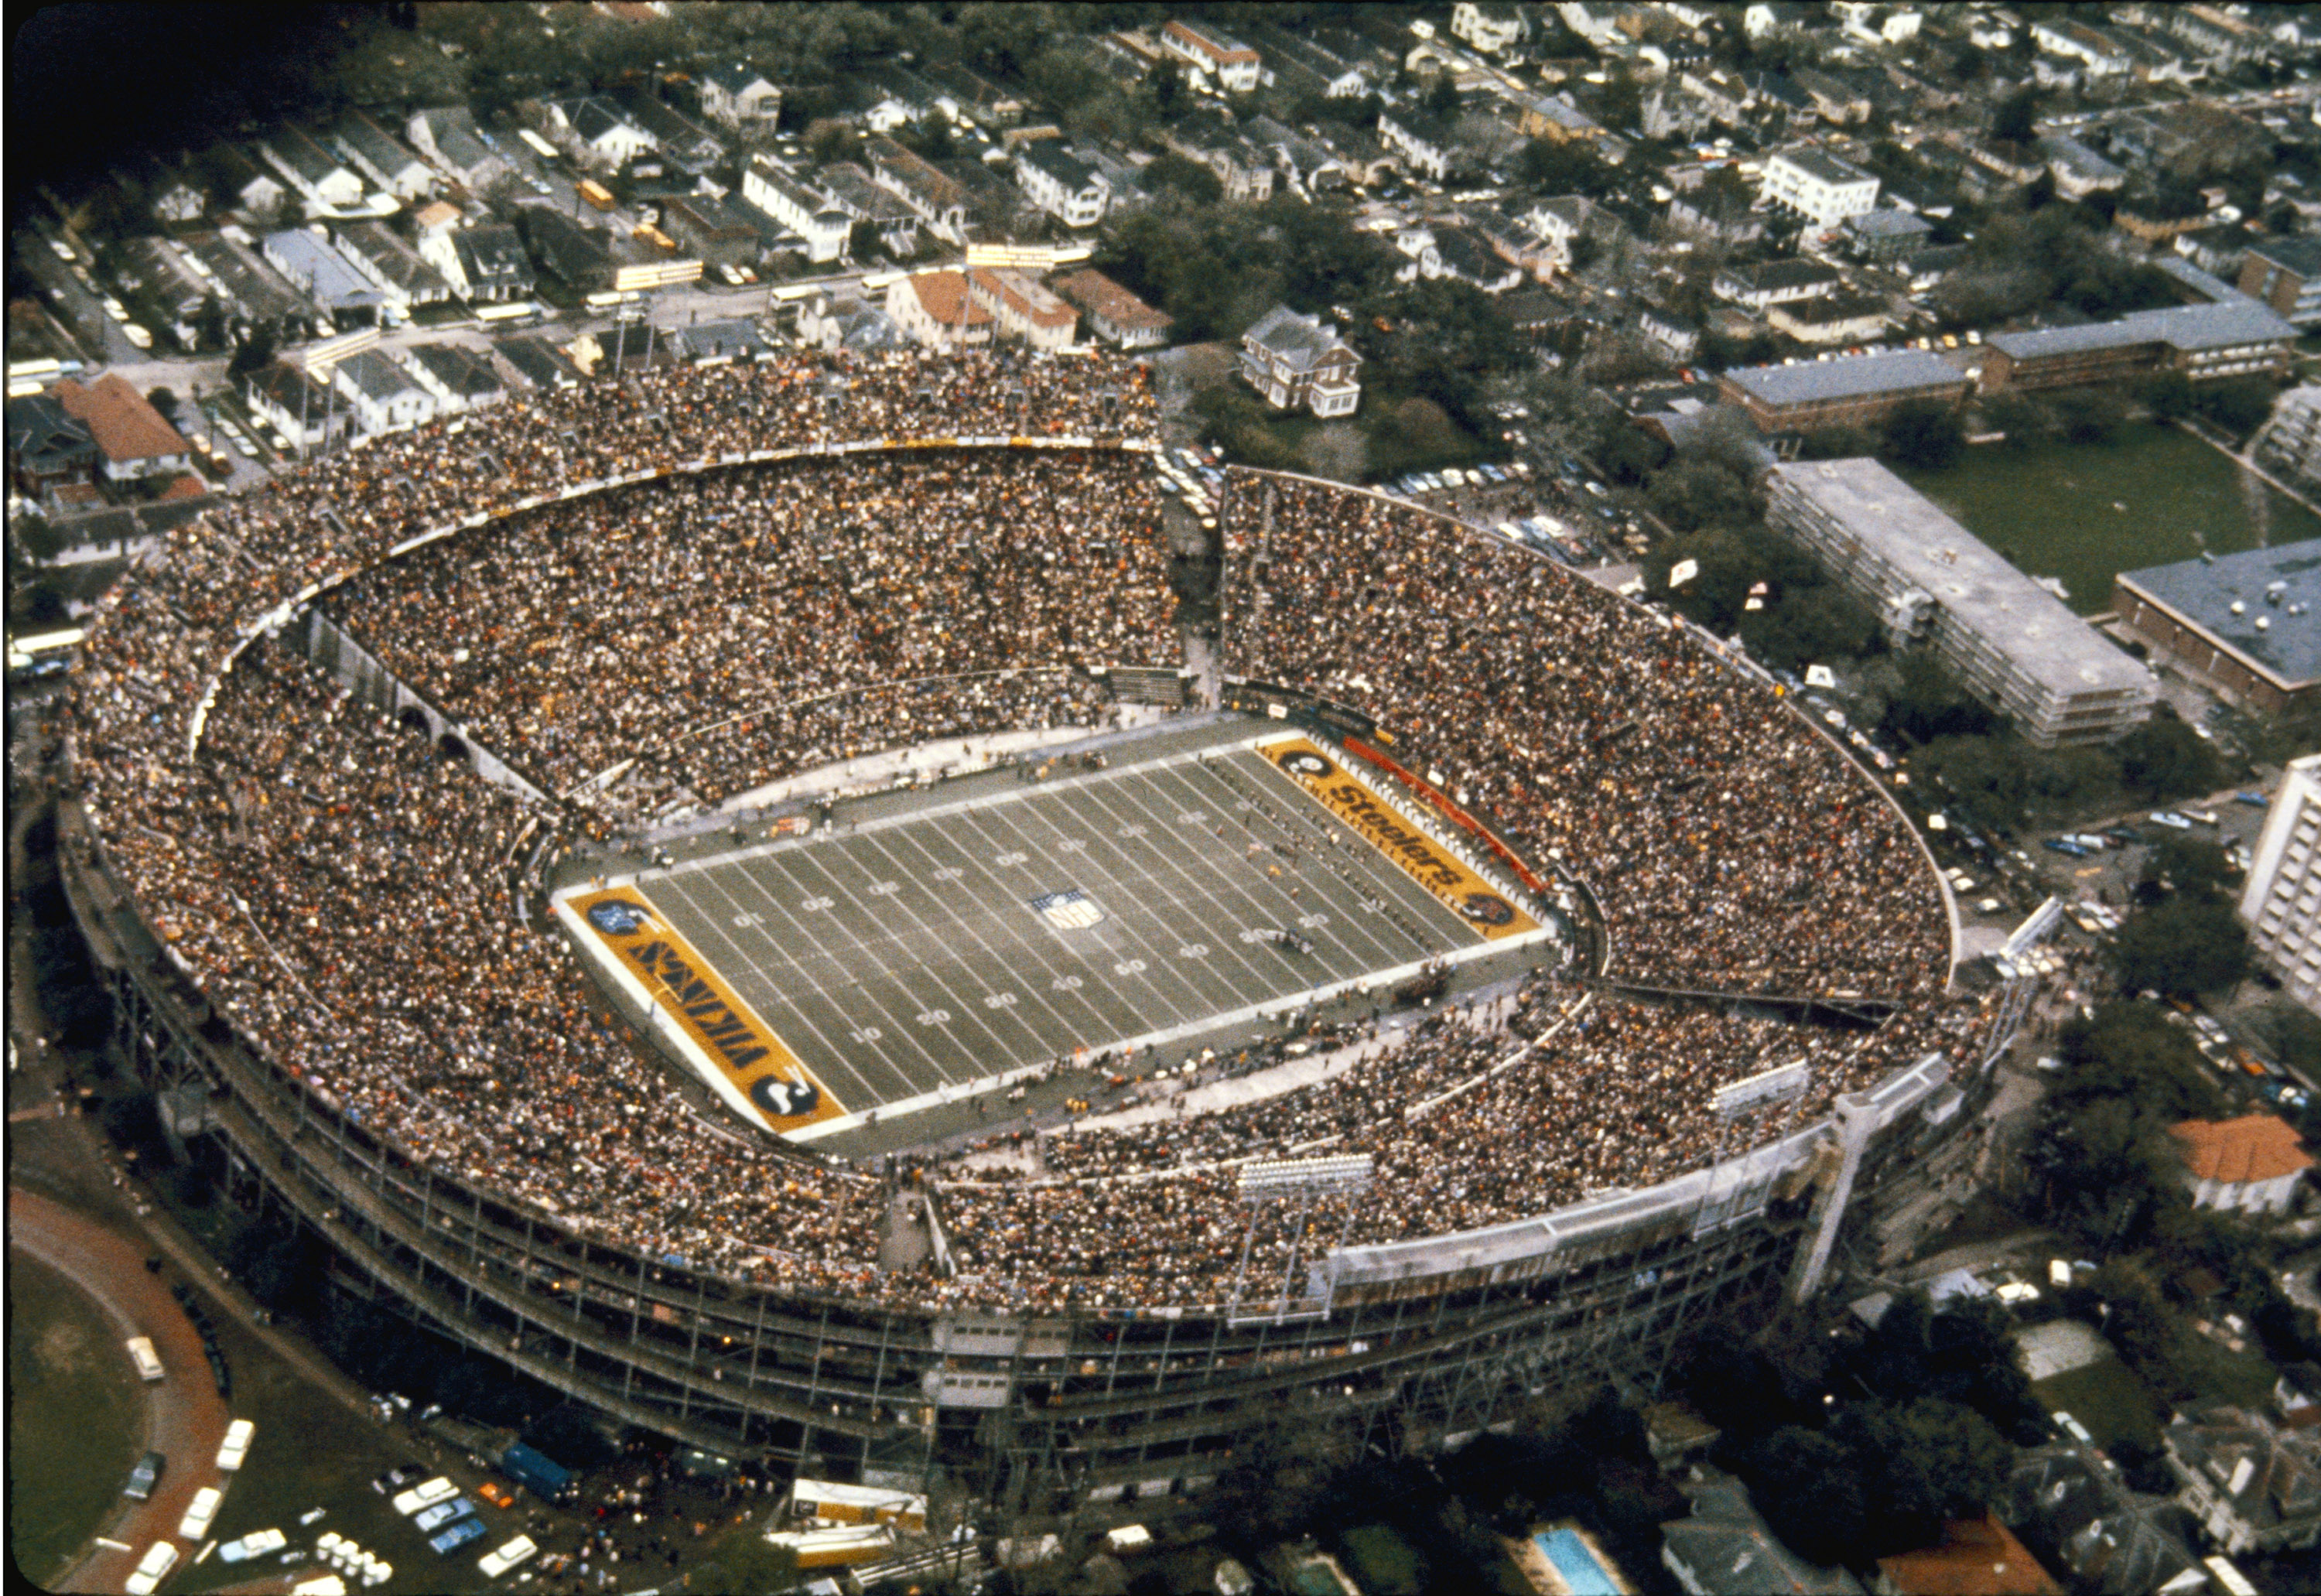 Opened in 1926, Tulane Stadium was the original home of the New Orleans Saints before the franchise's move to the Louisiana Superdome. The venue was razed in 1979 to make room for additional Tulane University buildings.